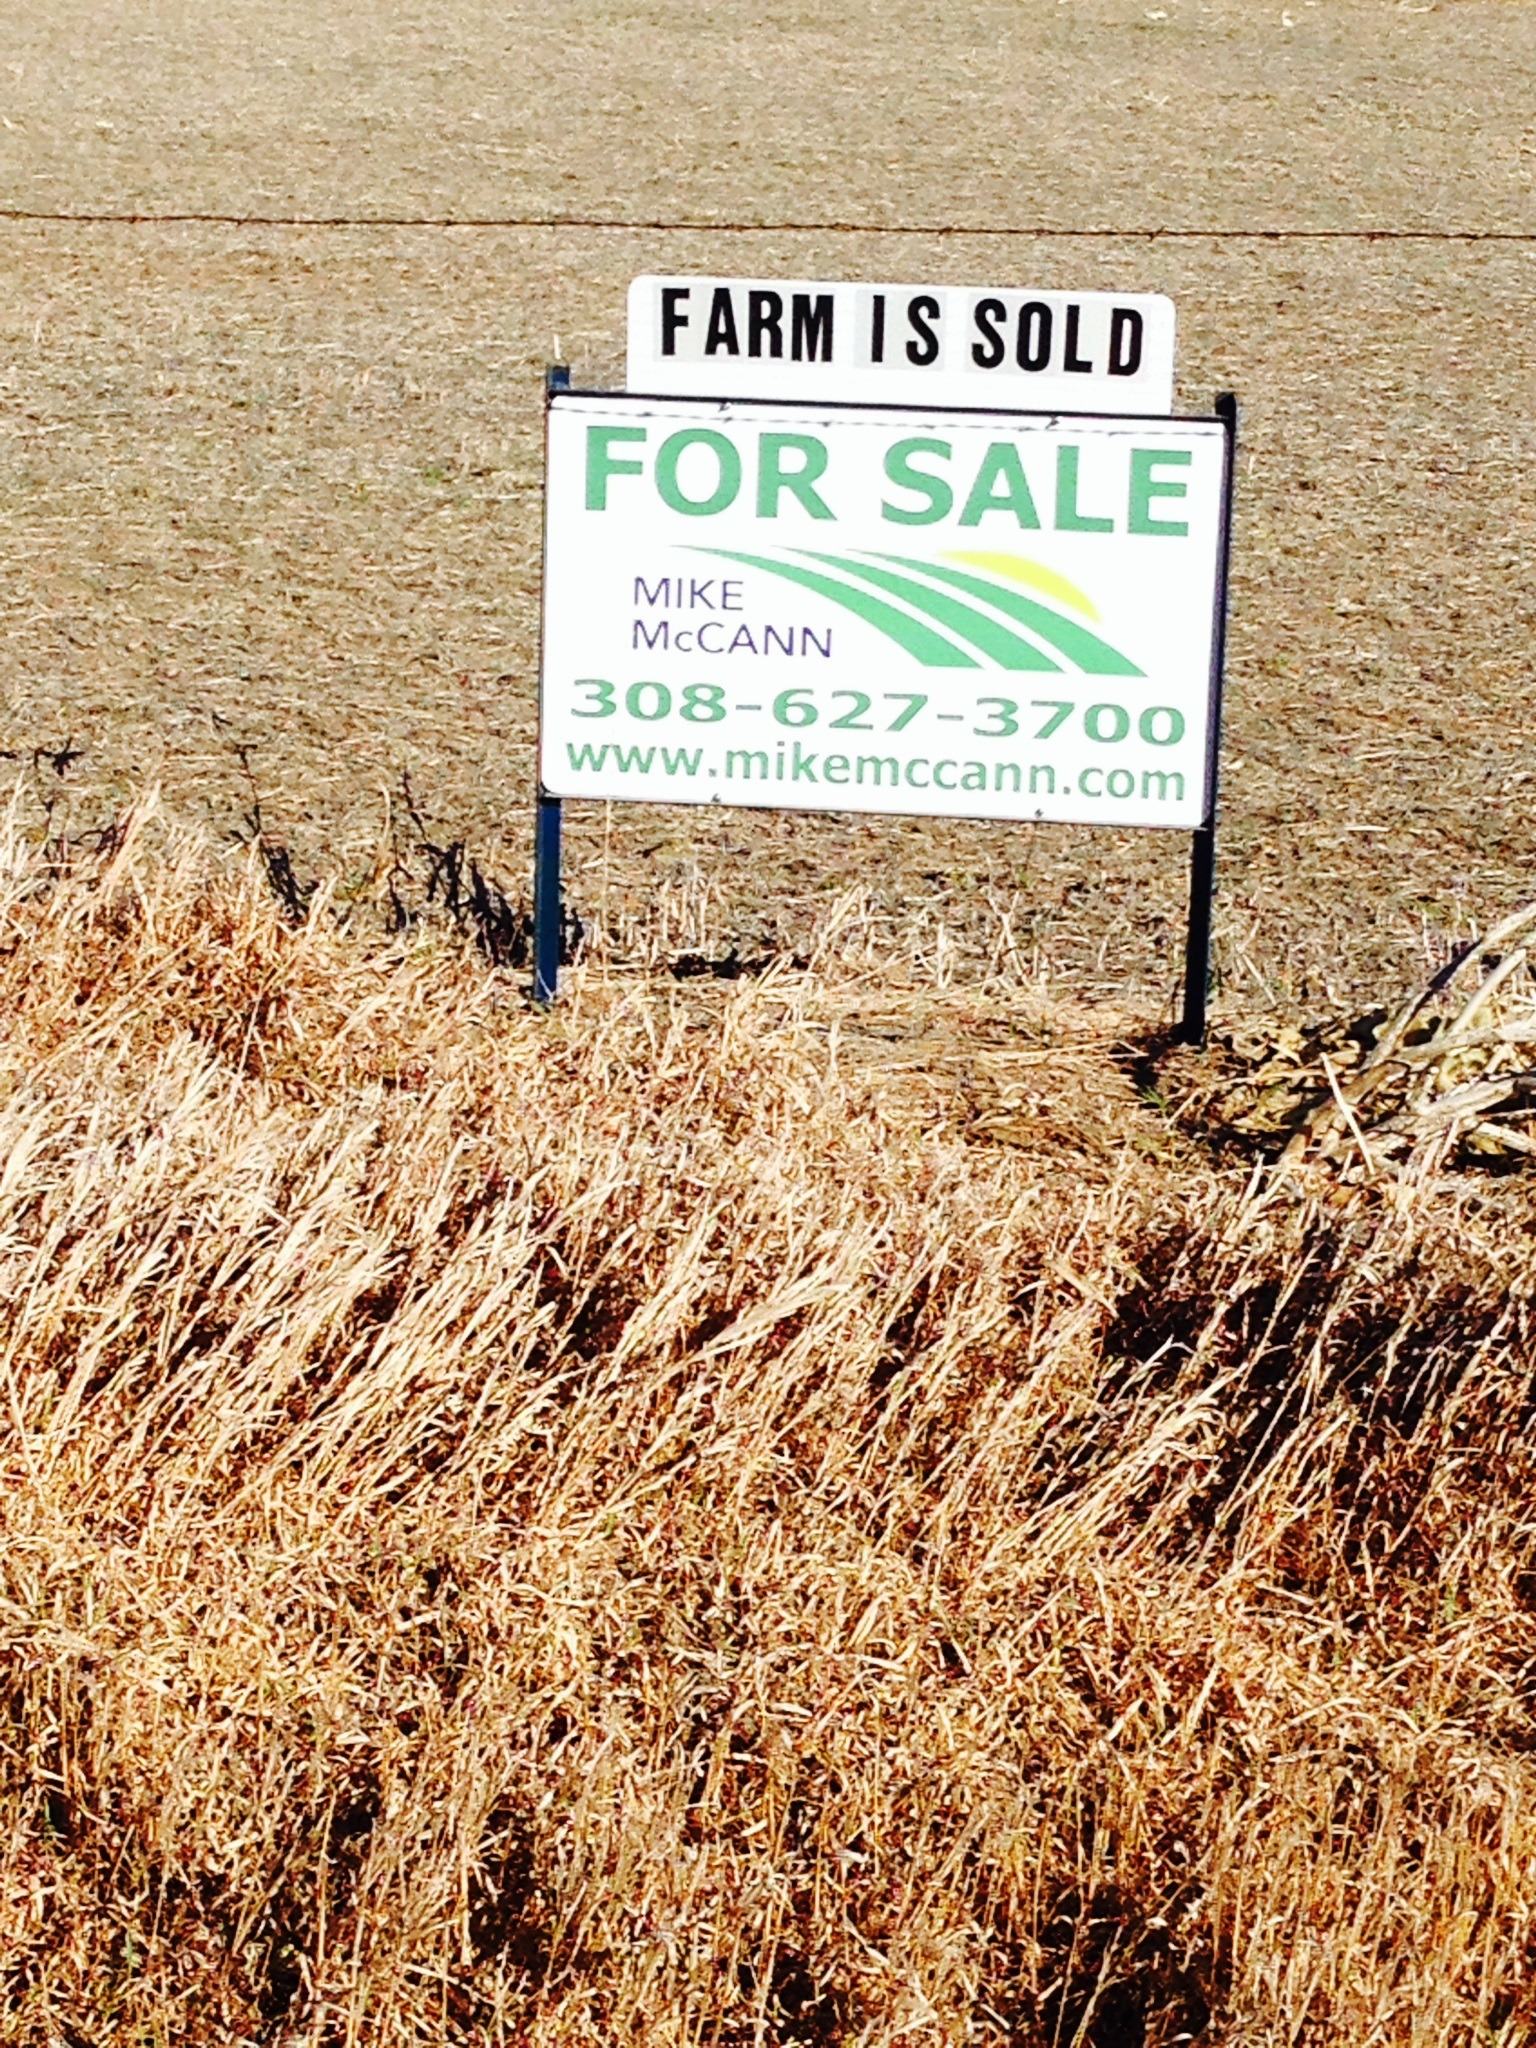 Farm is Sold Mike McCann-Broker